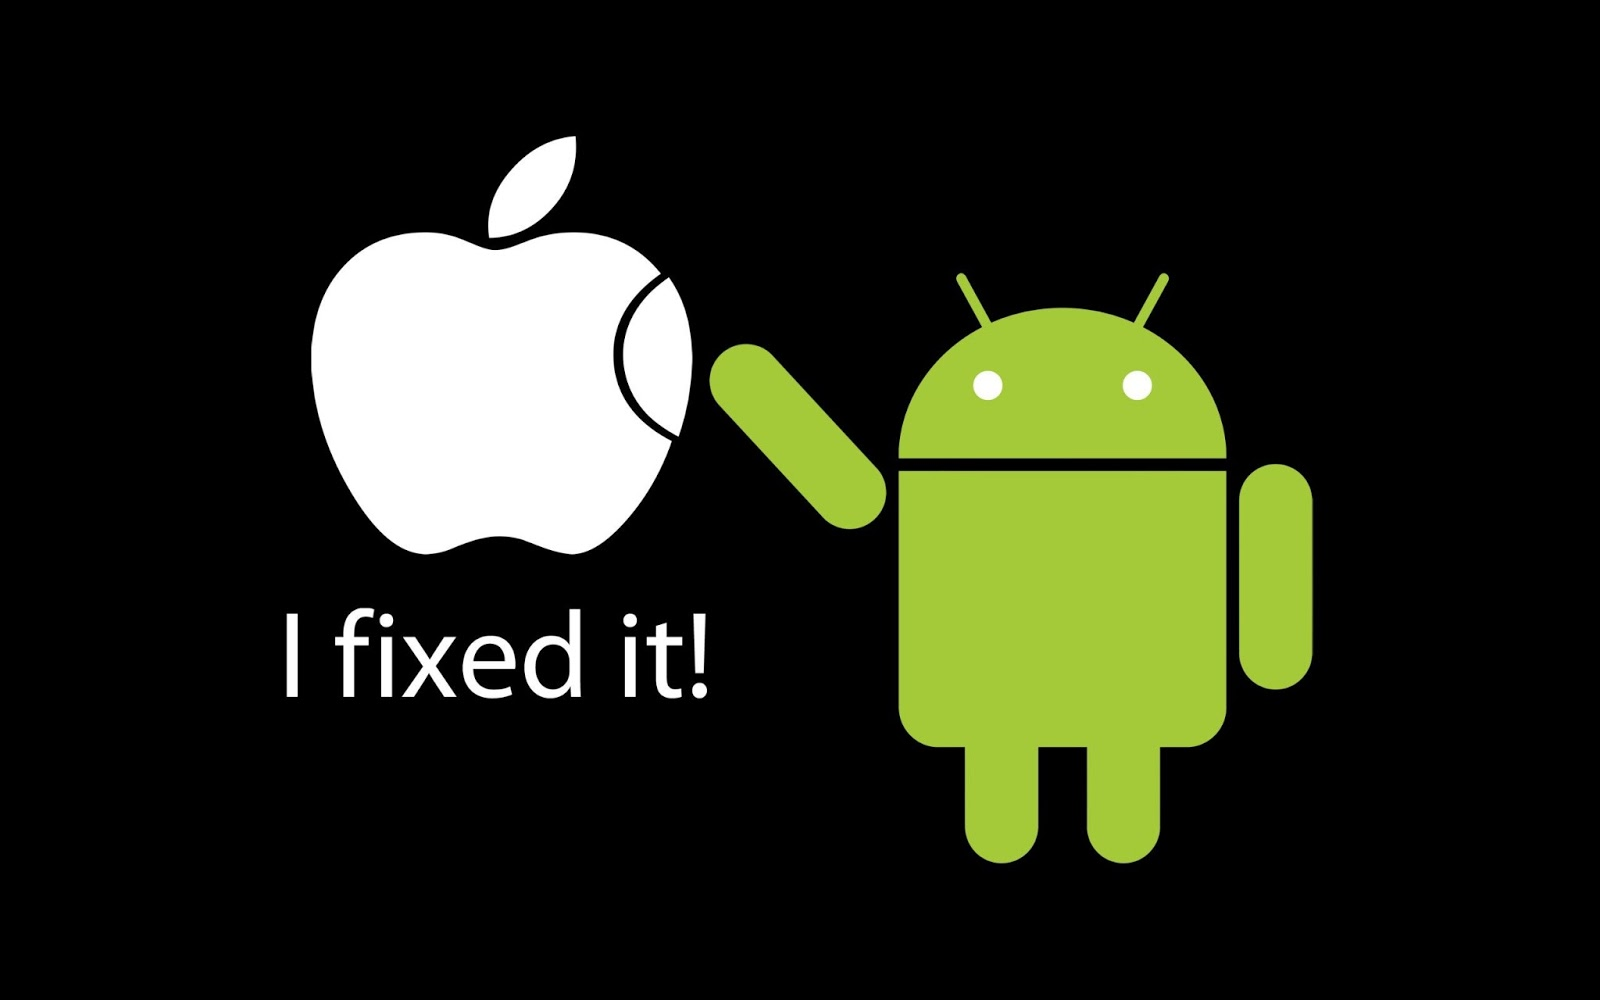 Funny Logos Pictures Wallpaper